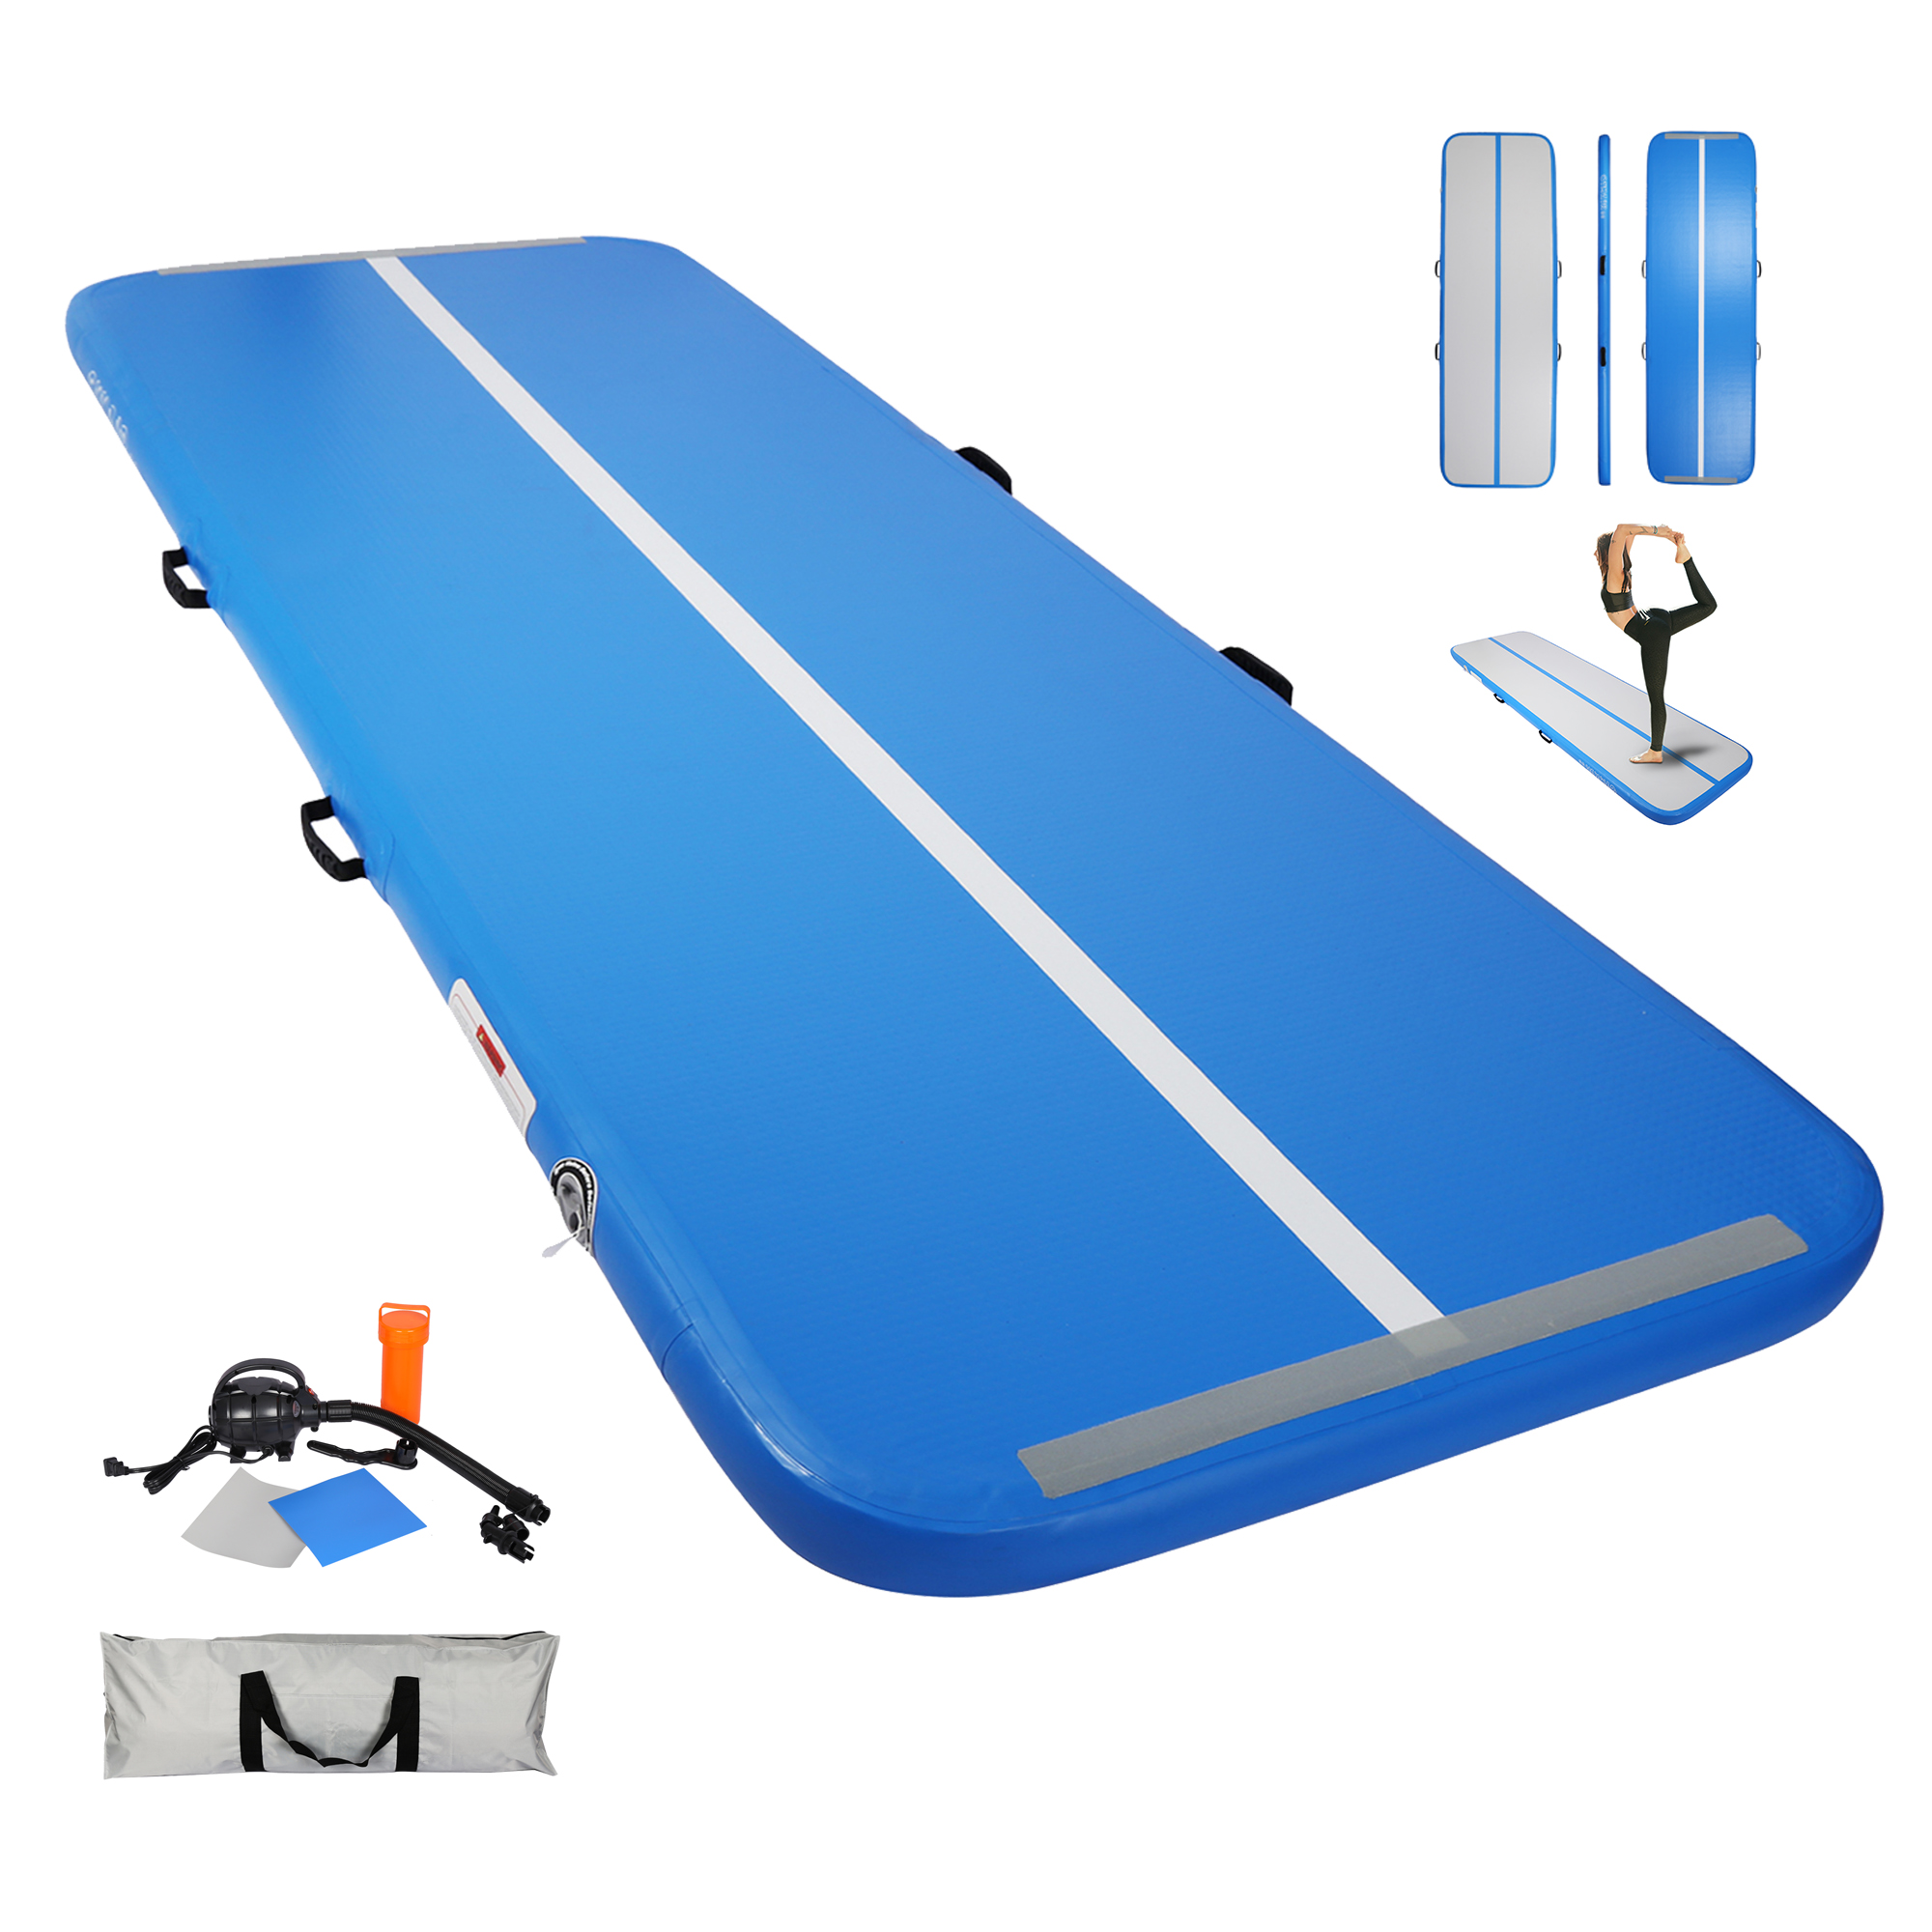 [US Direct] 10ft Inflatable Gymnastics  Tumbling Mat 4 inches Thickness Mats for Home Use/Training/Cheerleading/Yoga/Water with electircal Pump